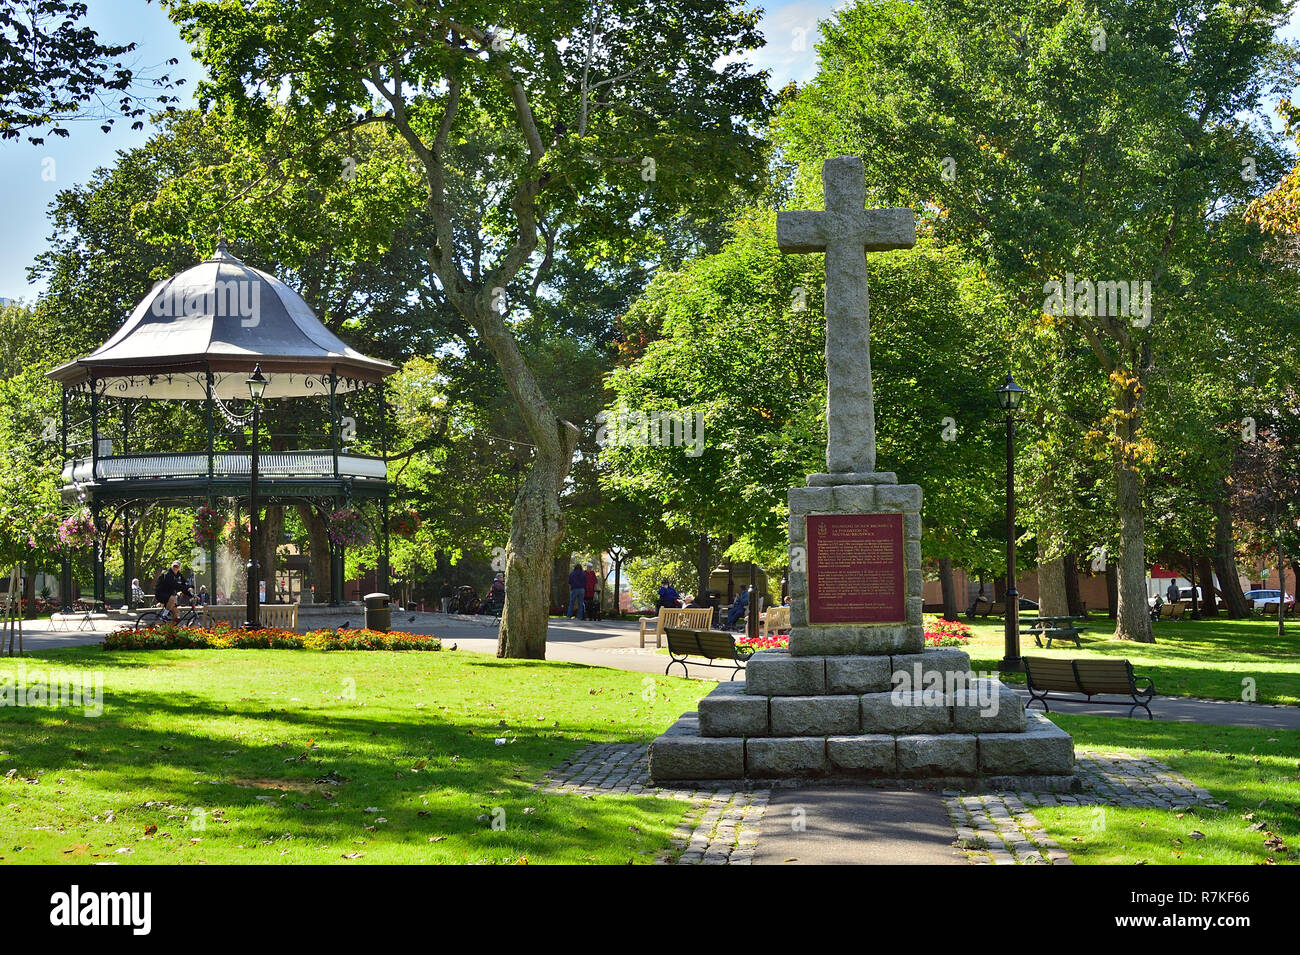 In King Square a stone memorial cross to honor the landing of the first settlers, the loyalist in the city of Saint John New Brunswick Canada. - Stock Image